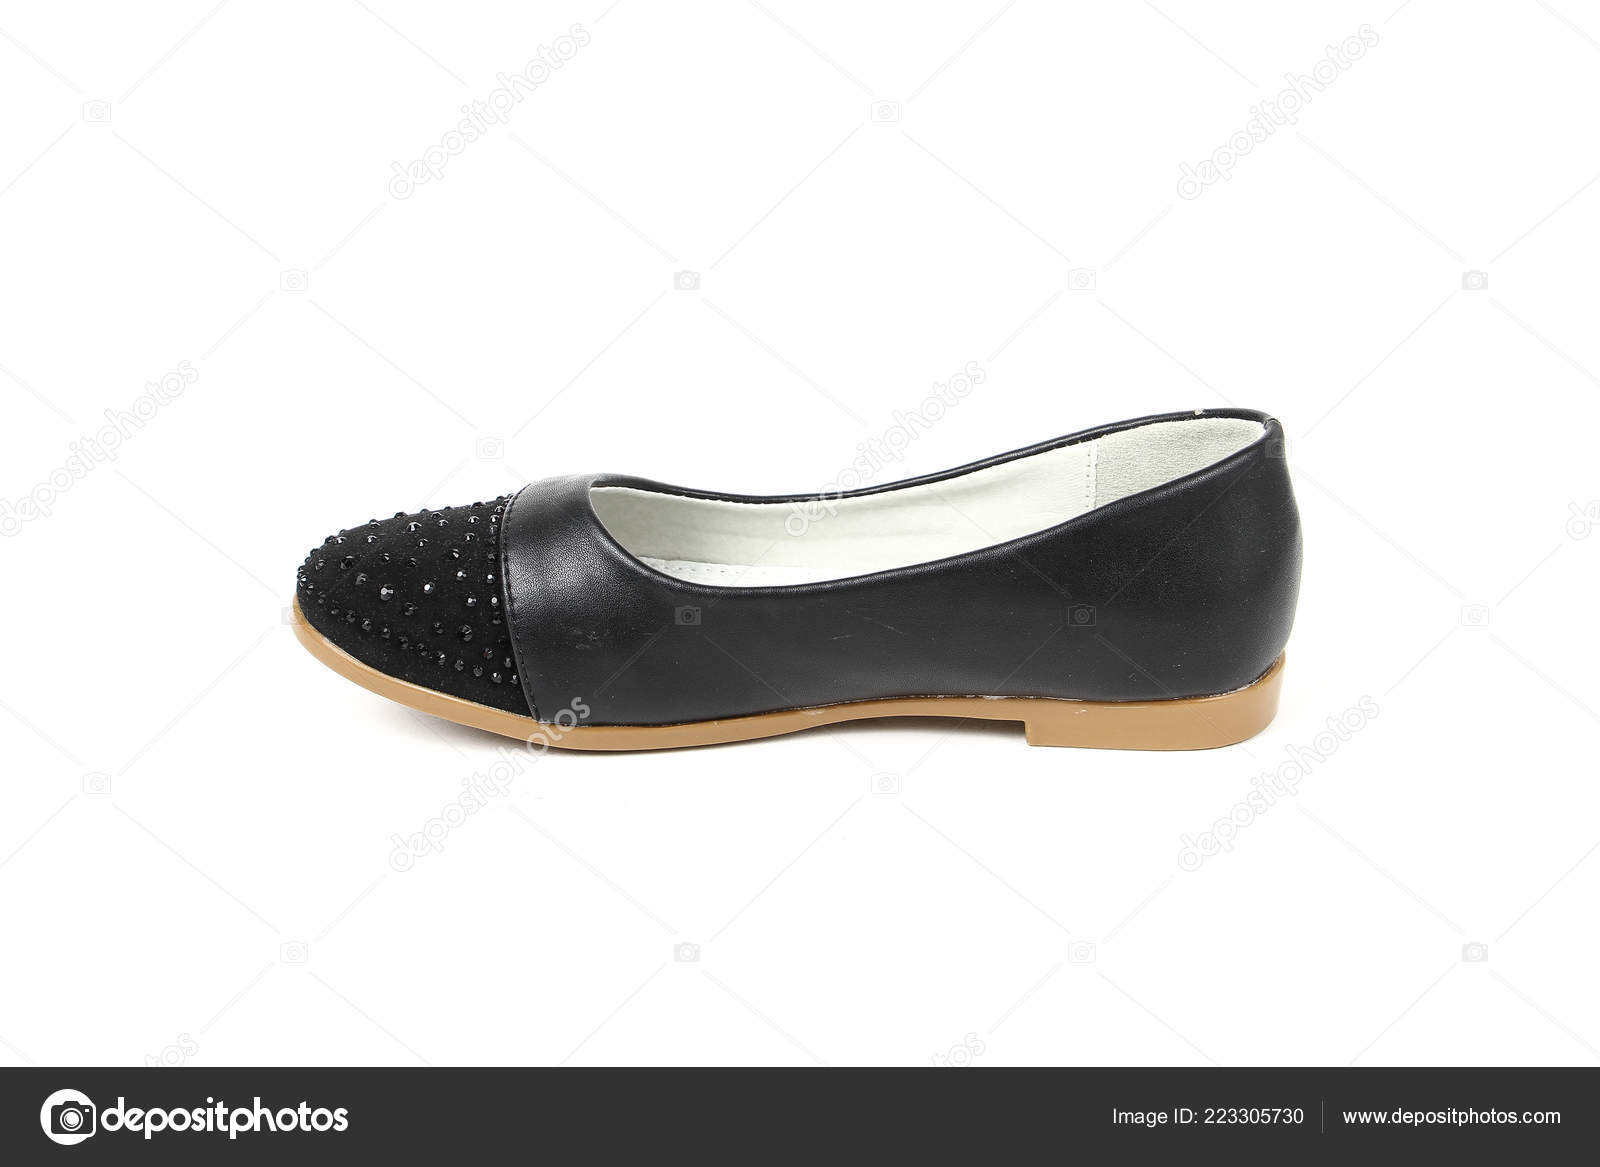 d2141743a Women Flat Photo Black Shoes Isolated White Background — Stock Photo ...